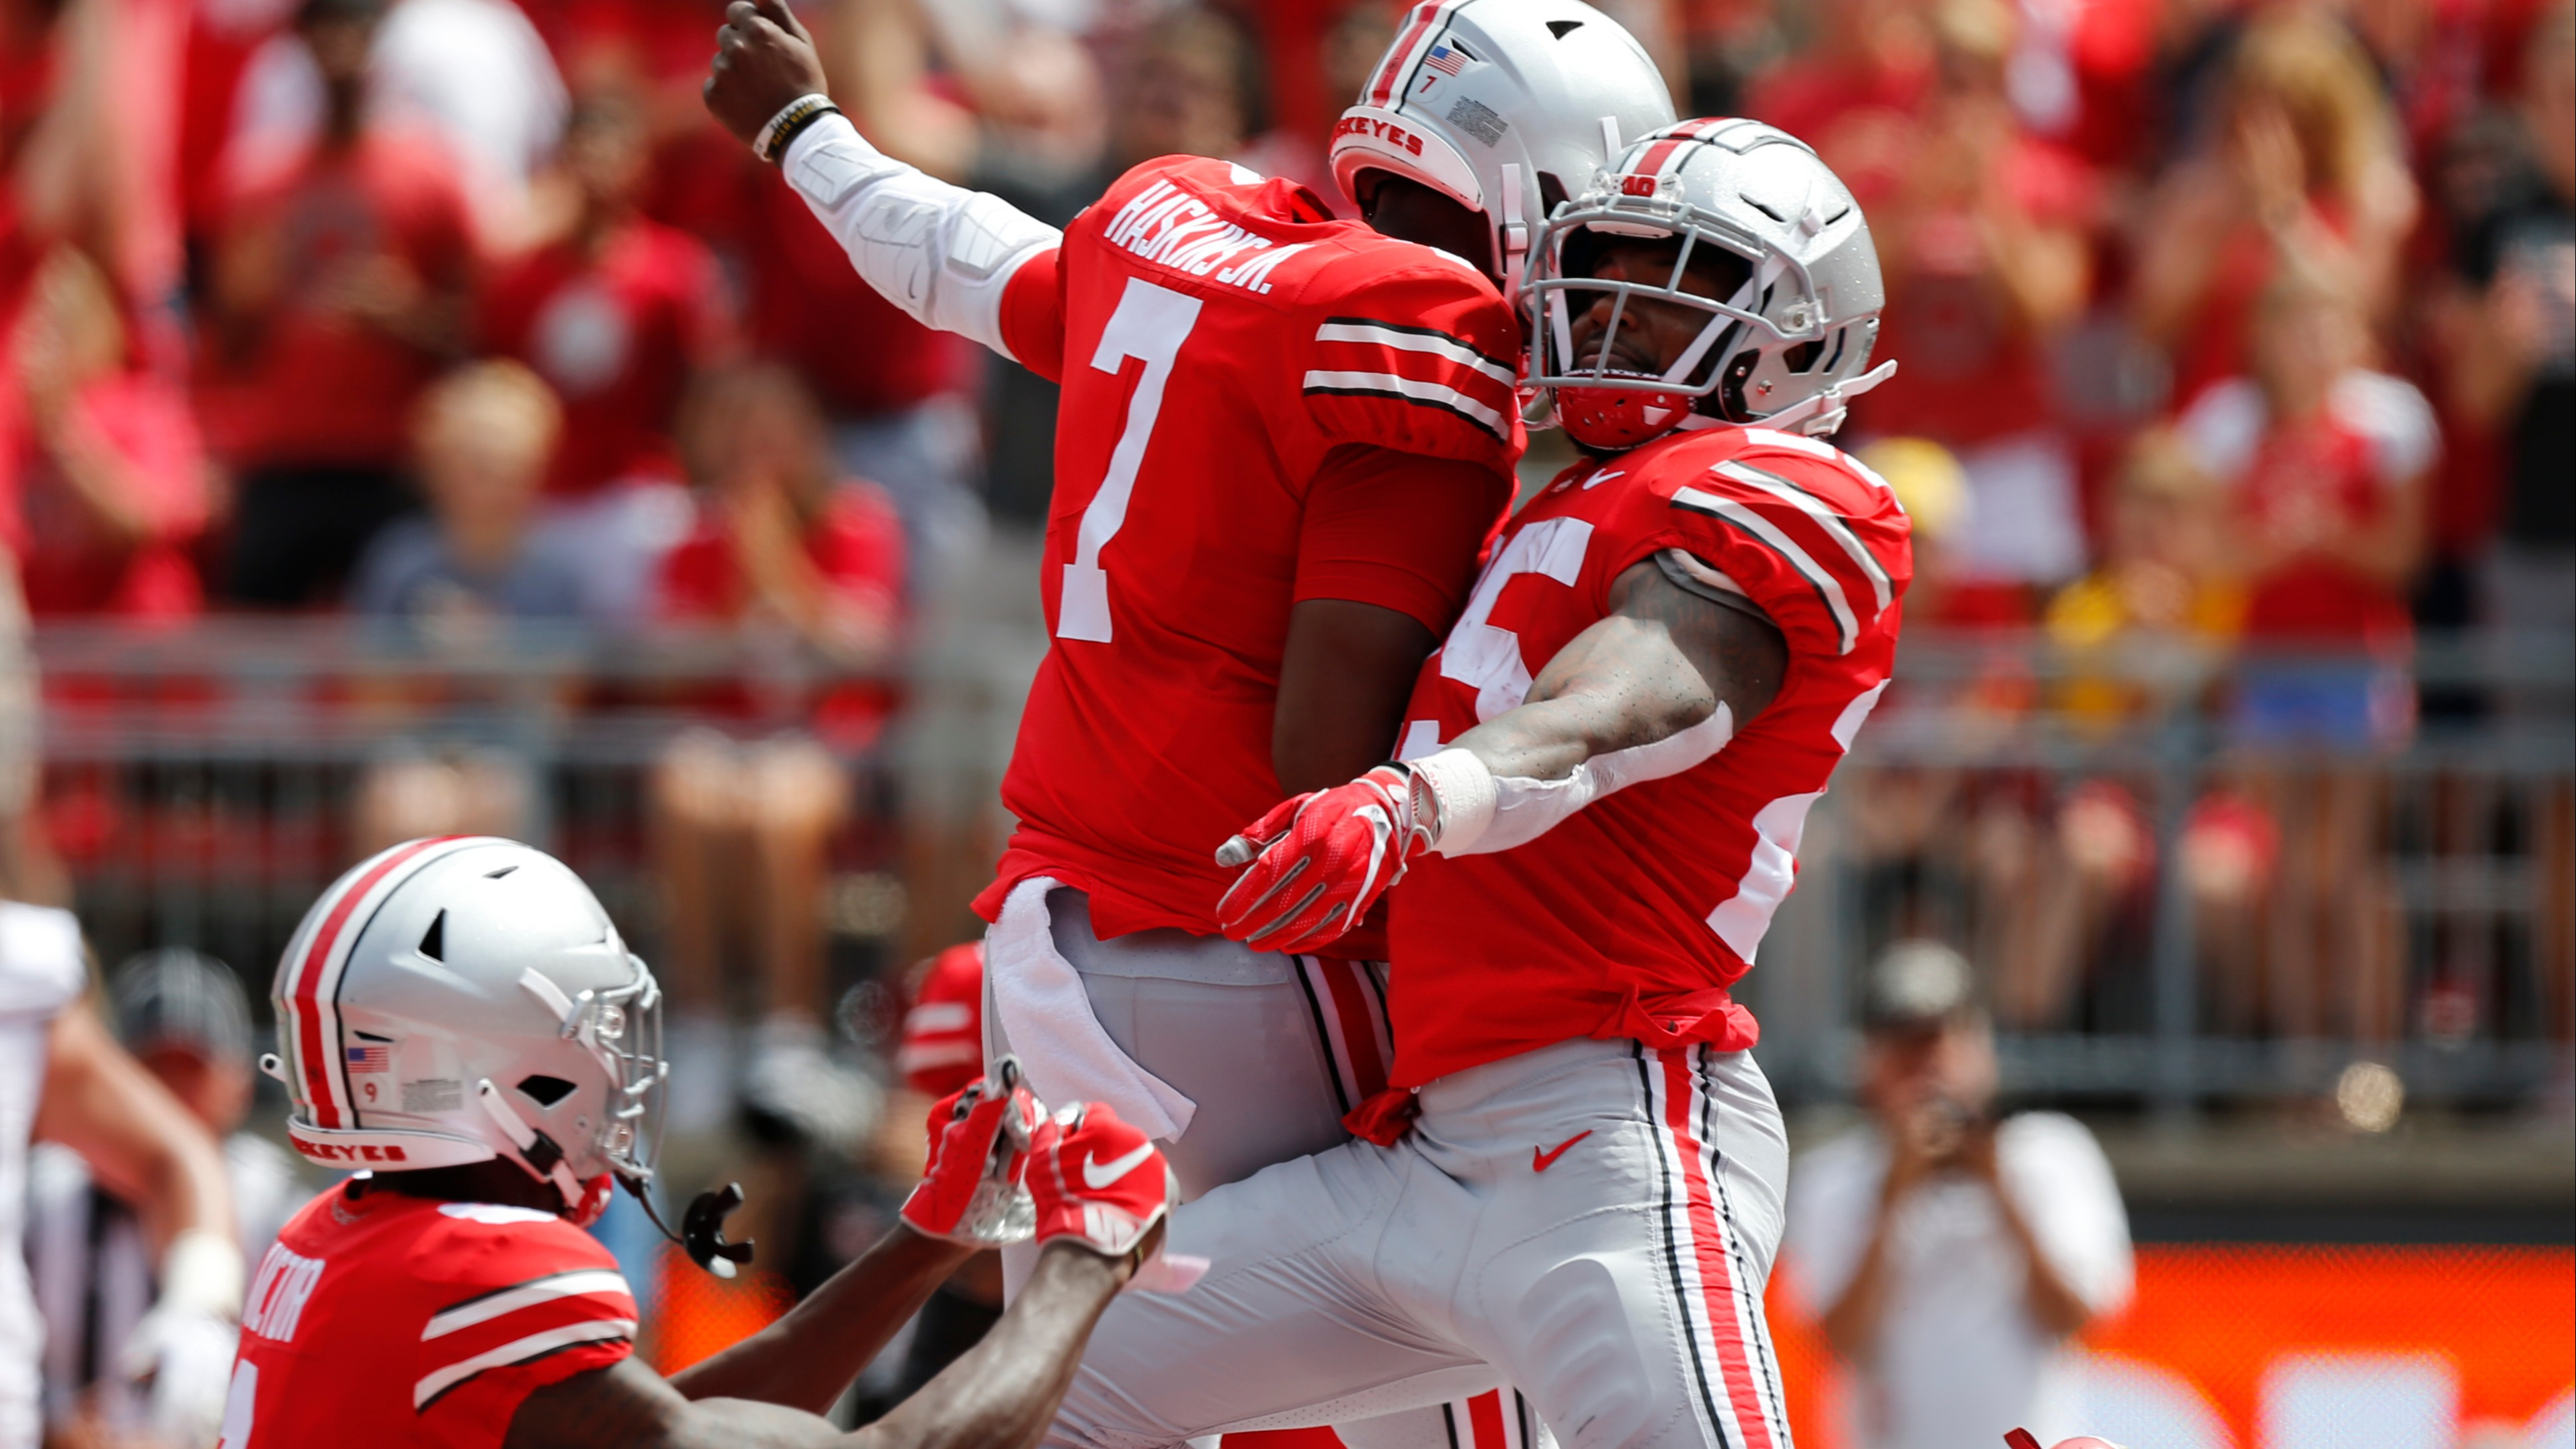 Bet on ohio state wise guys sports betting